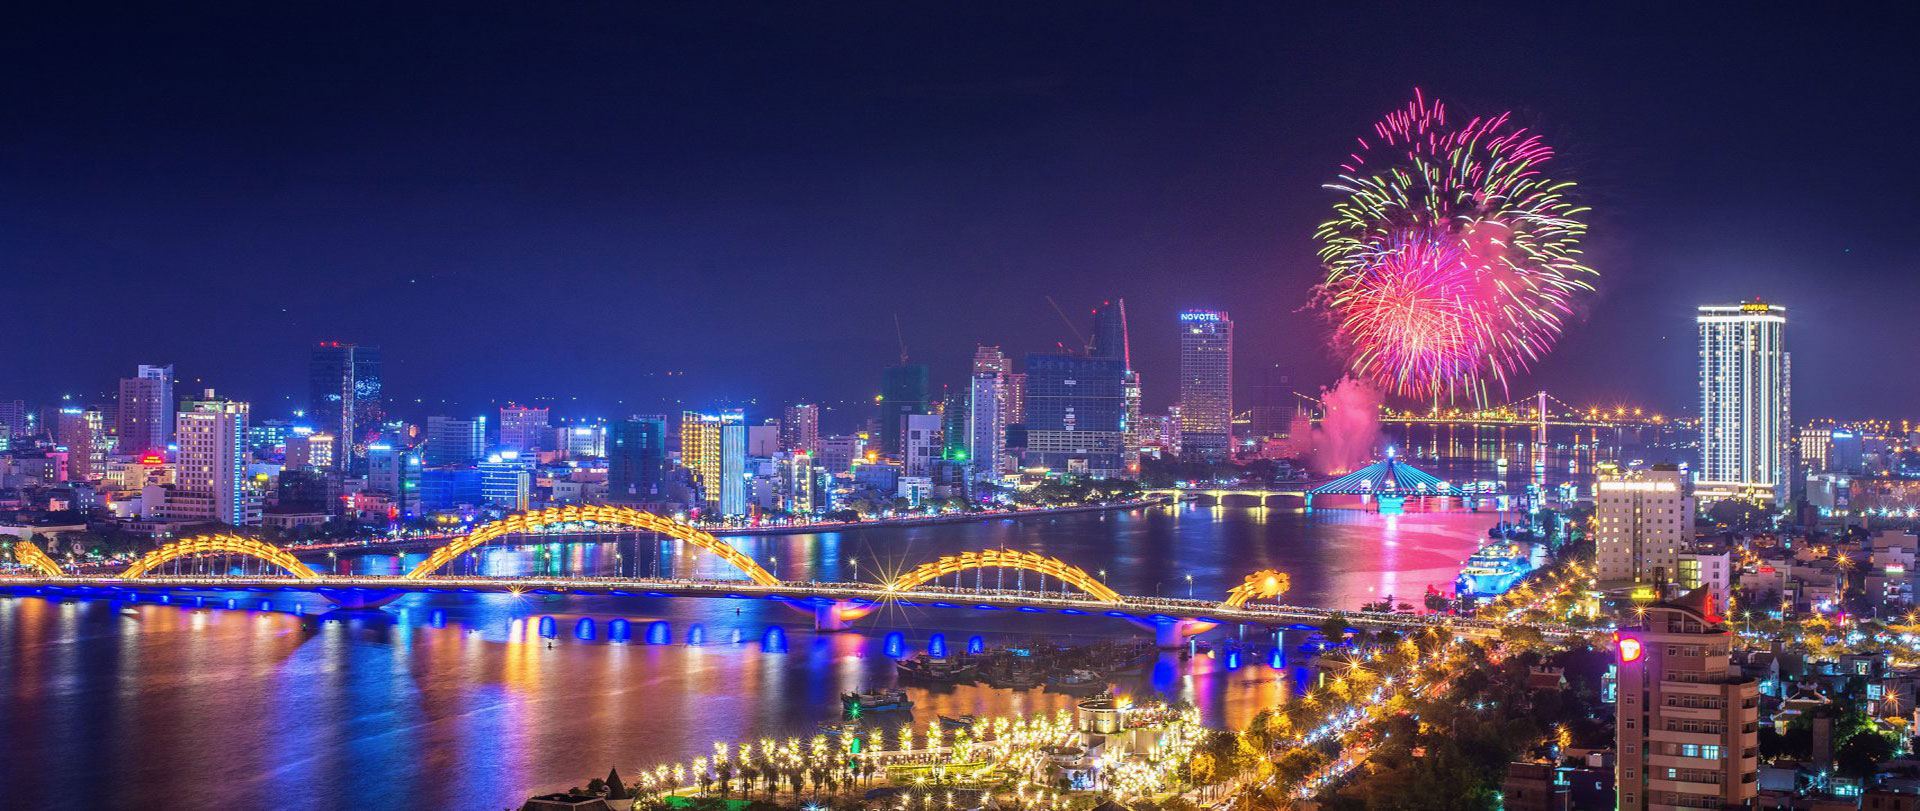 Fireworks are displayed in Da Nang City on the occasion of International New Year